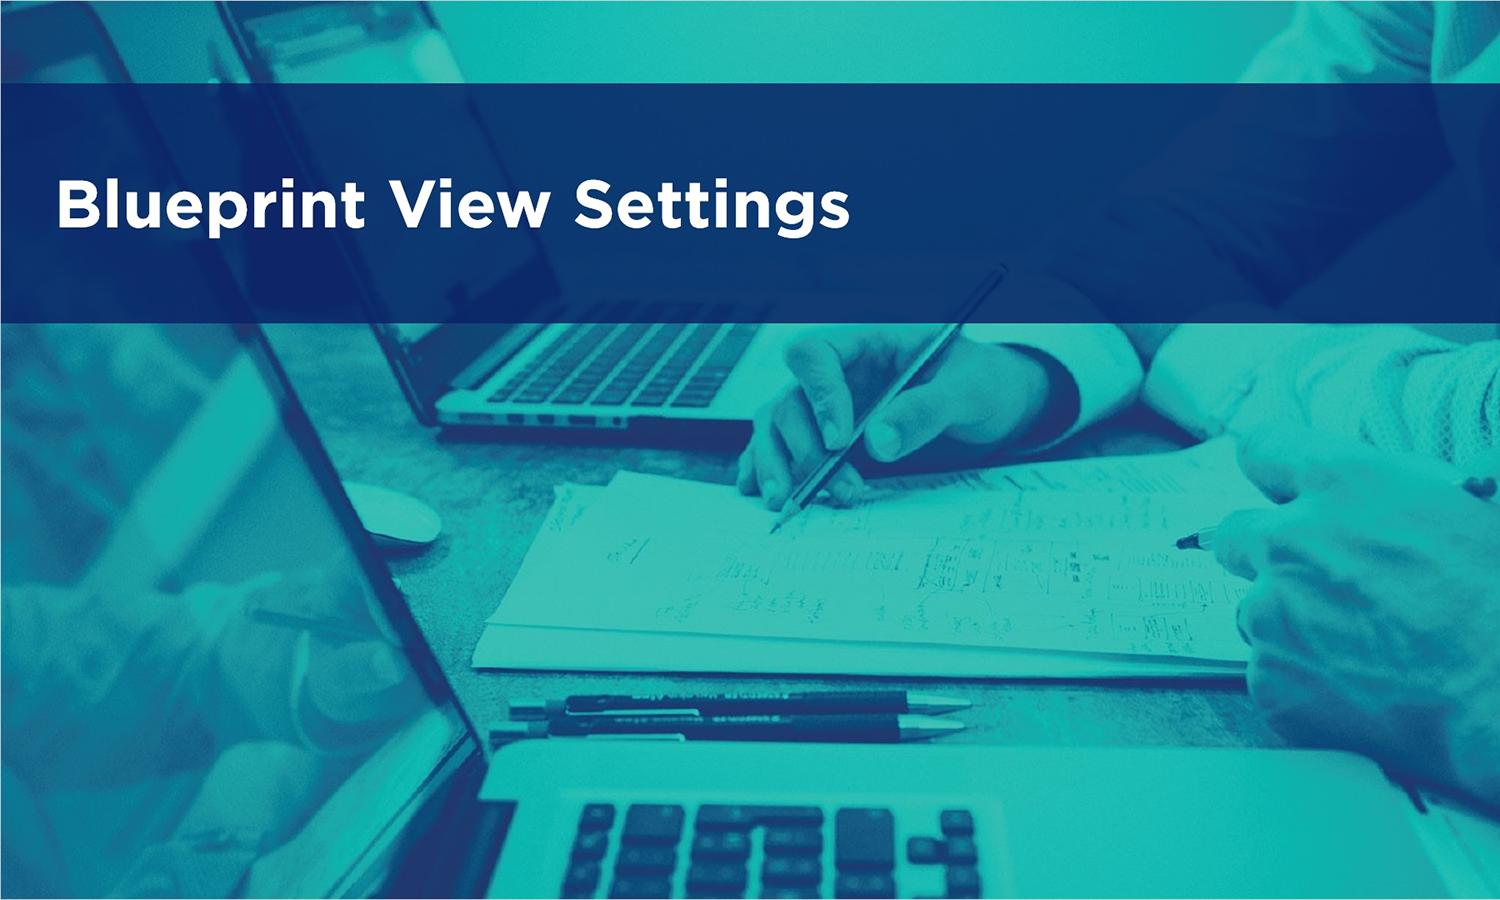 Blueprint View Settings